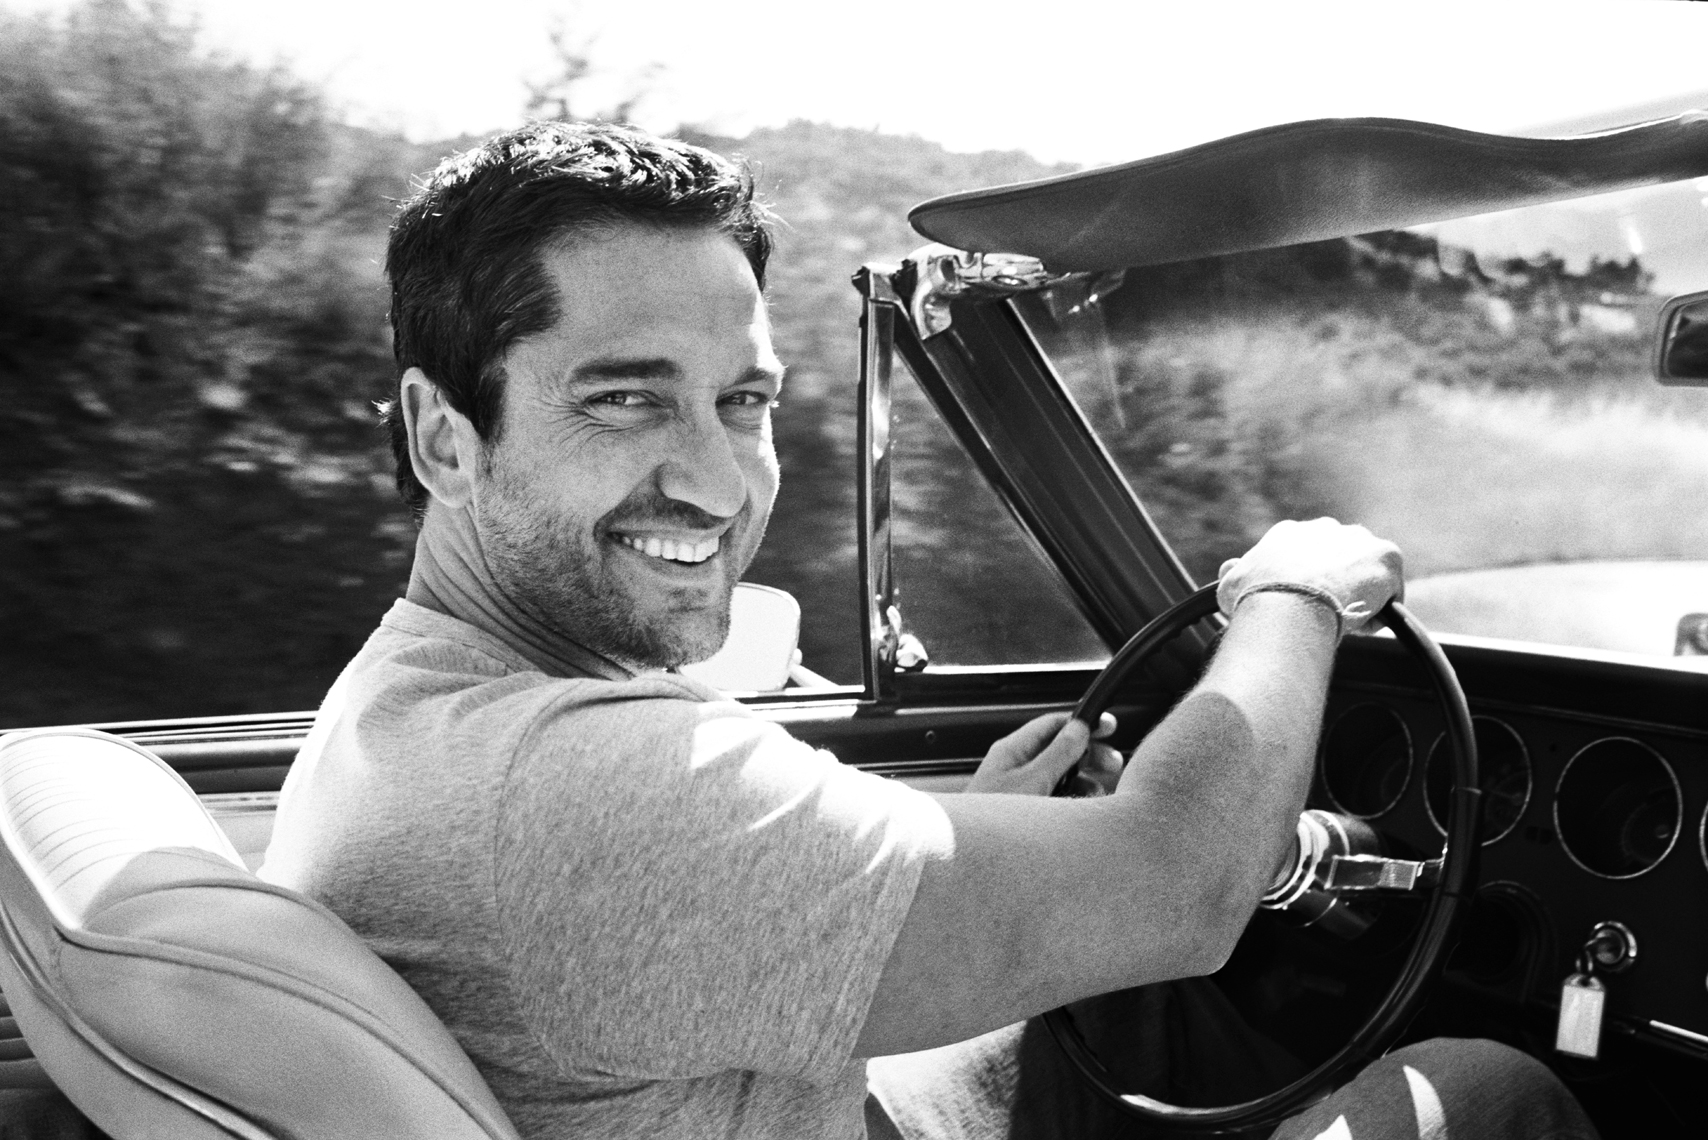 wGerard_Butler_Driving_Car_BW